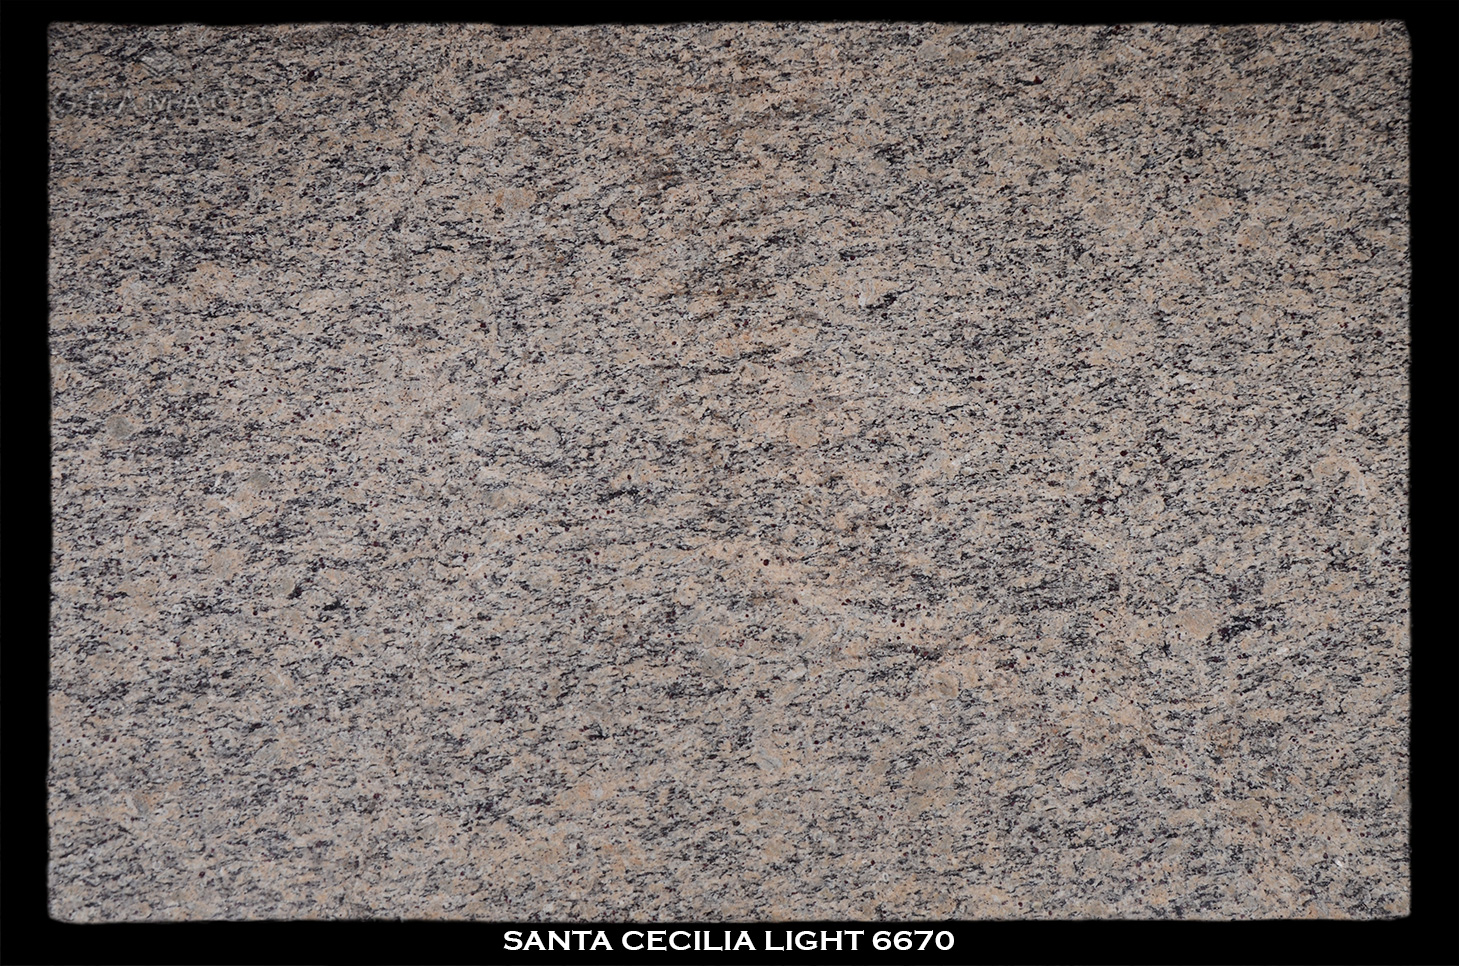 SANTA-CECILIA-LIGHT-6670---FULL-SLAB-BLACK